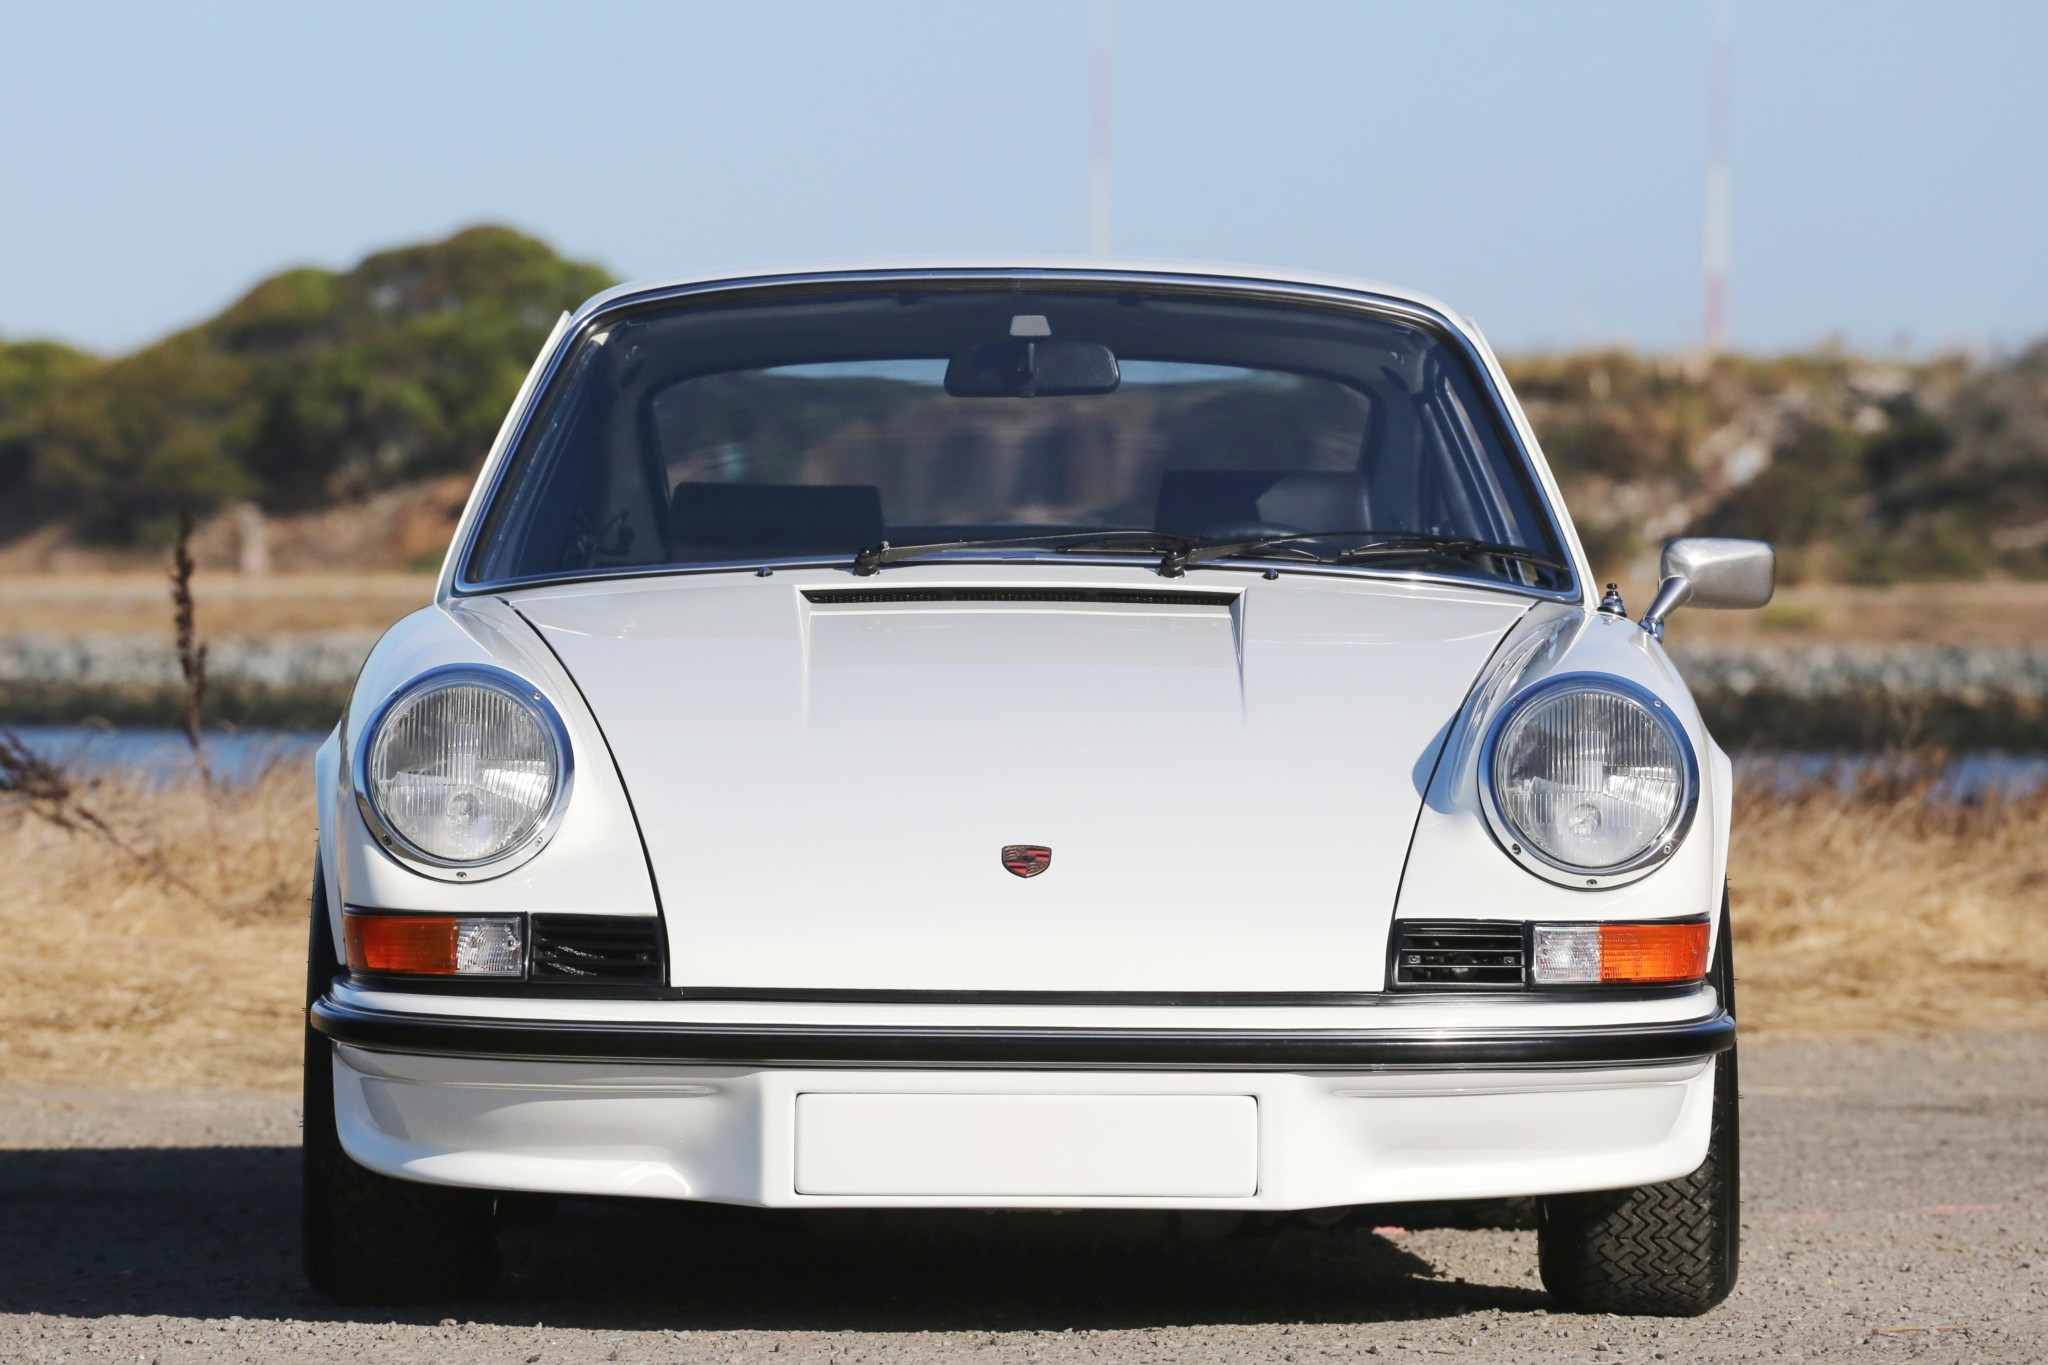 Porsche-911-Carrera-RS-2.7-1973-for-sale-32